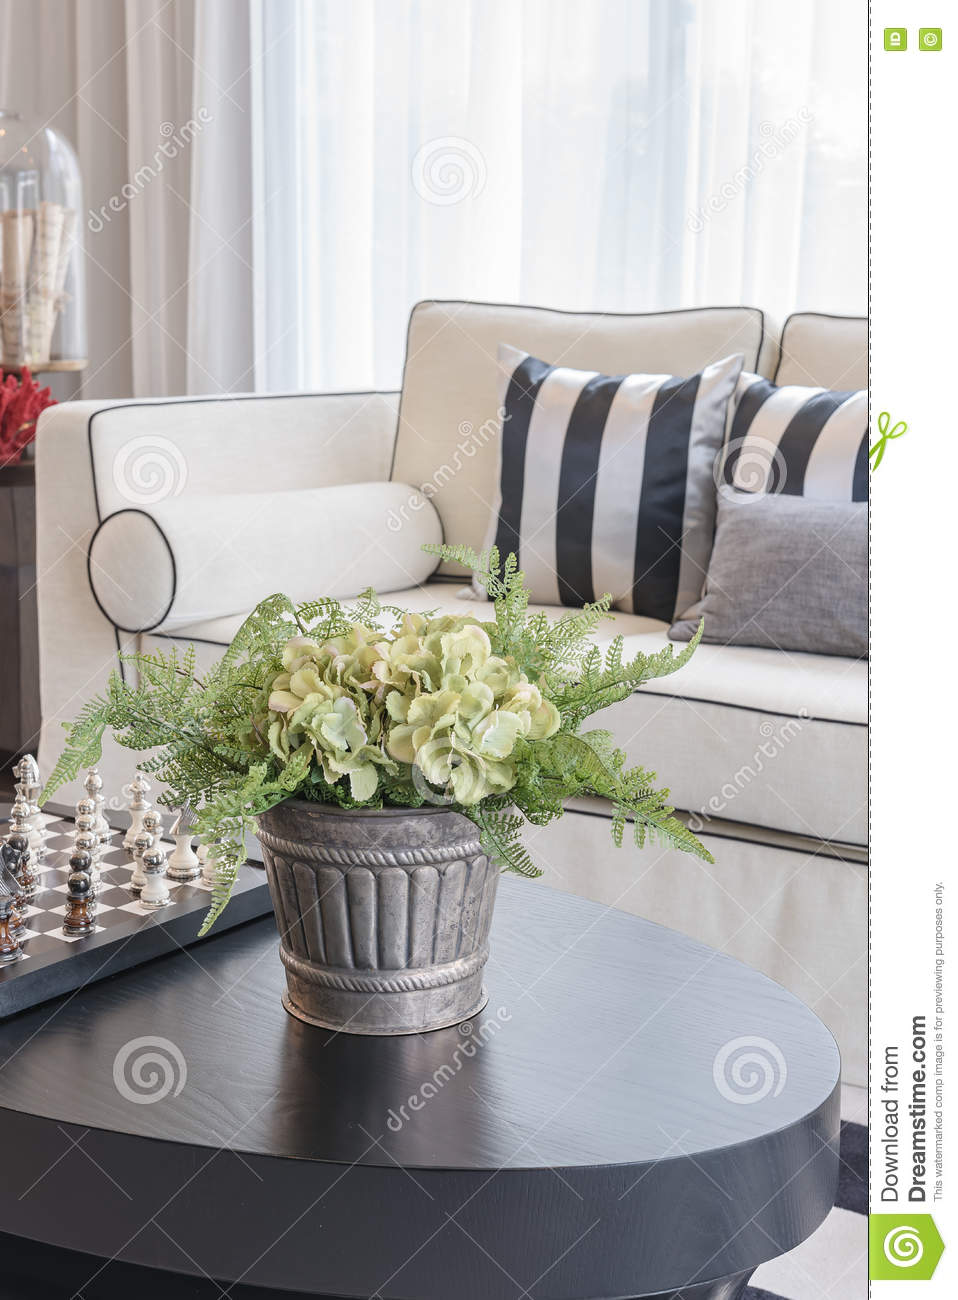 Super White Elegance Sofa With Black And White Pillows In Luxury Bralicious Painted Fabric Chair Ideas Braliciousco